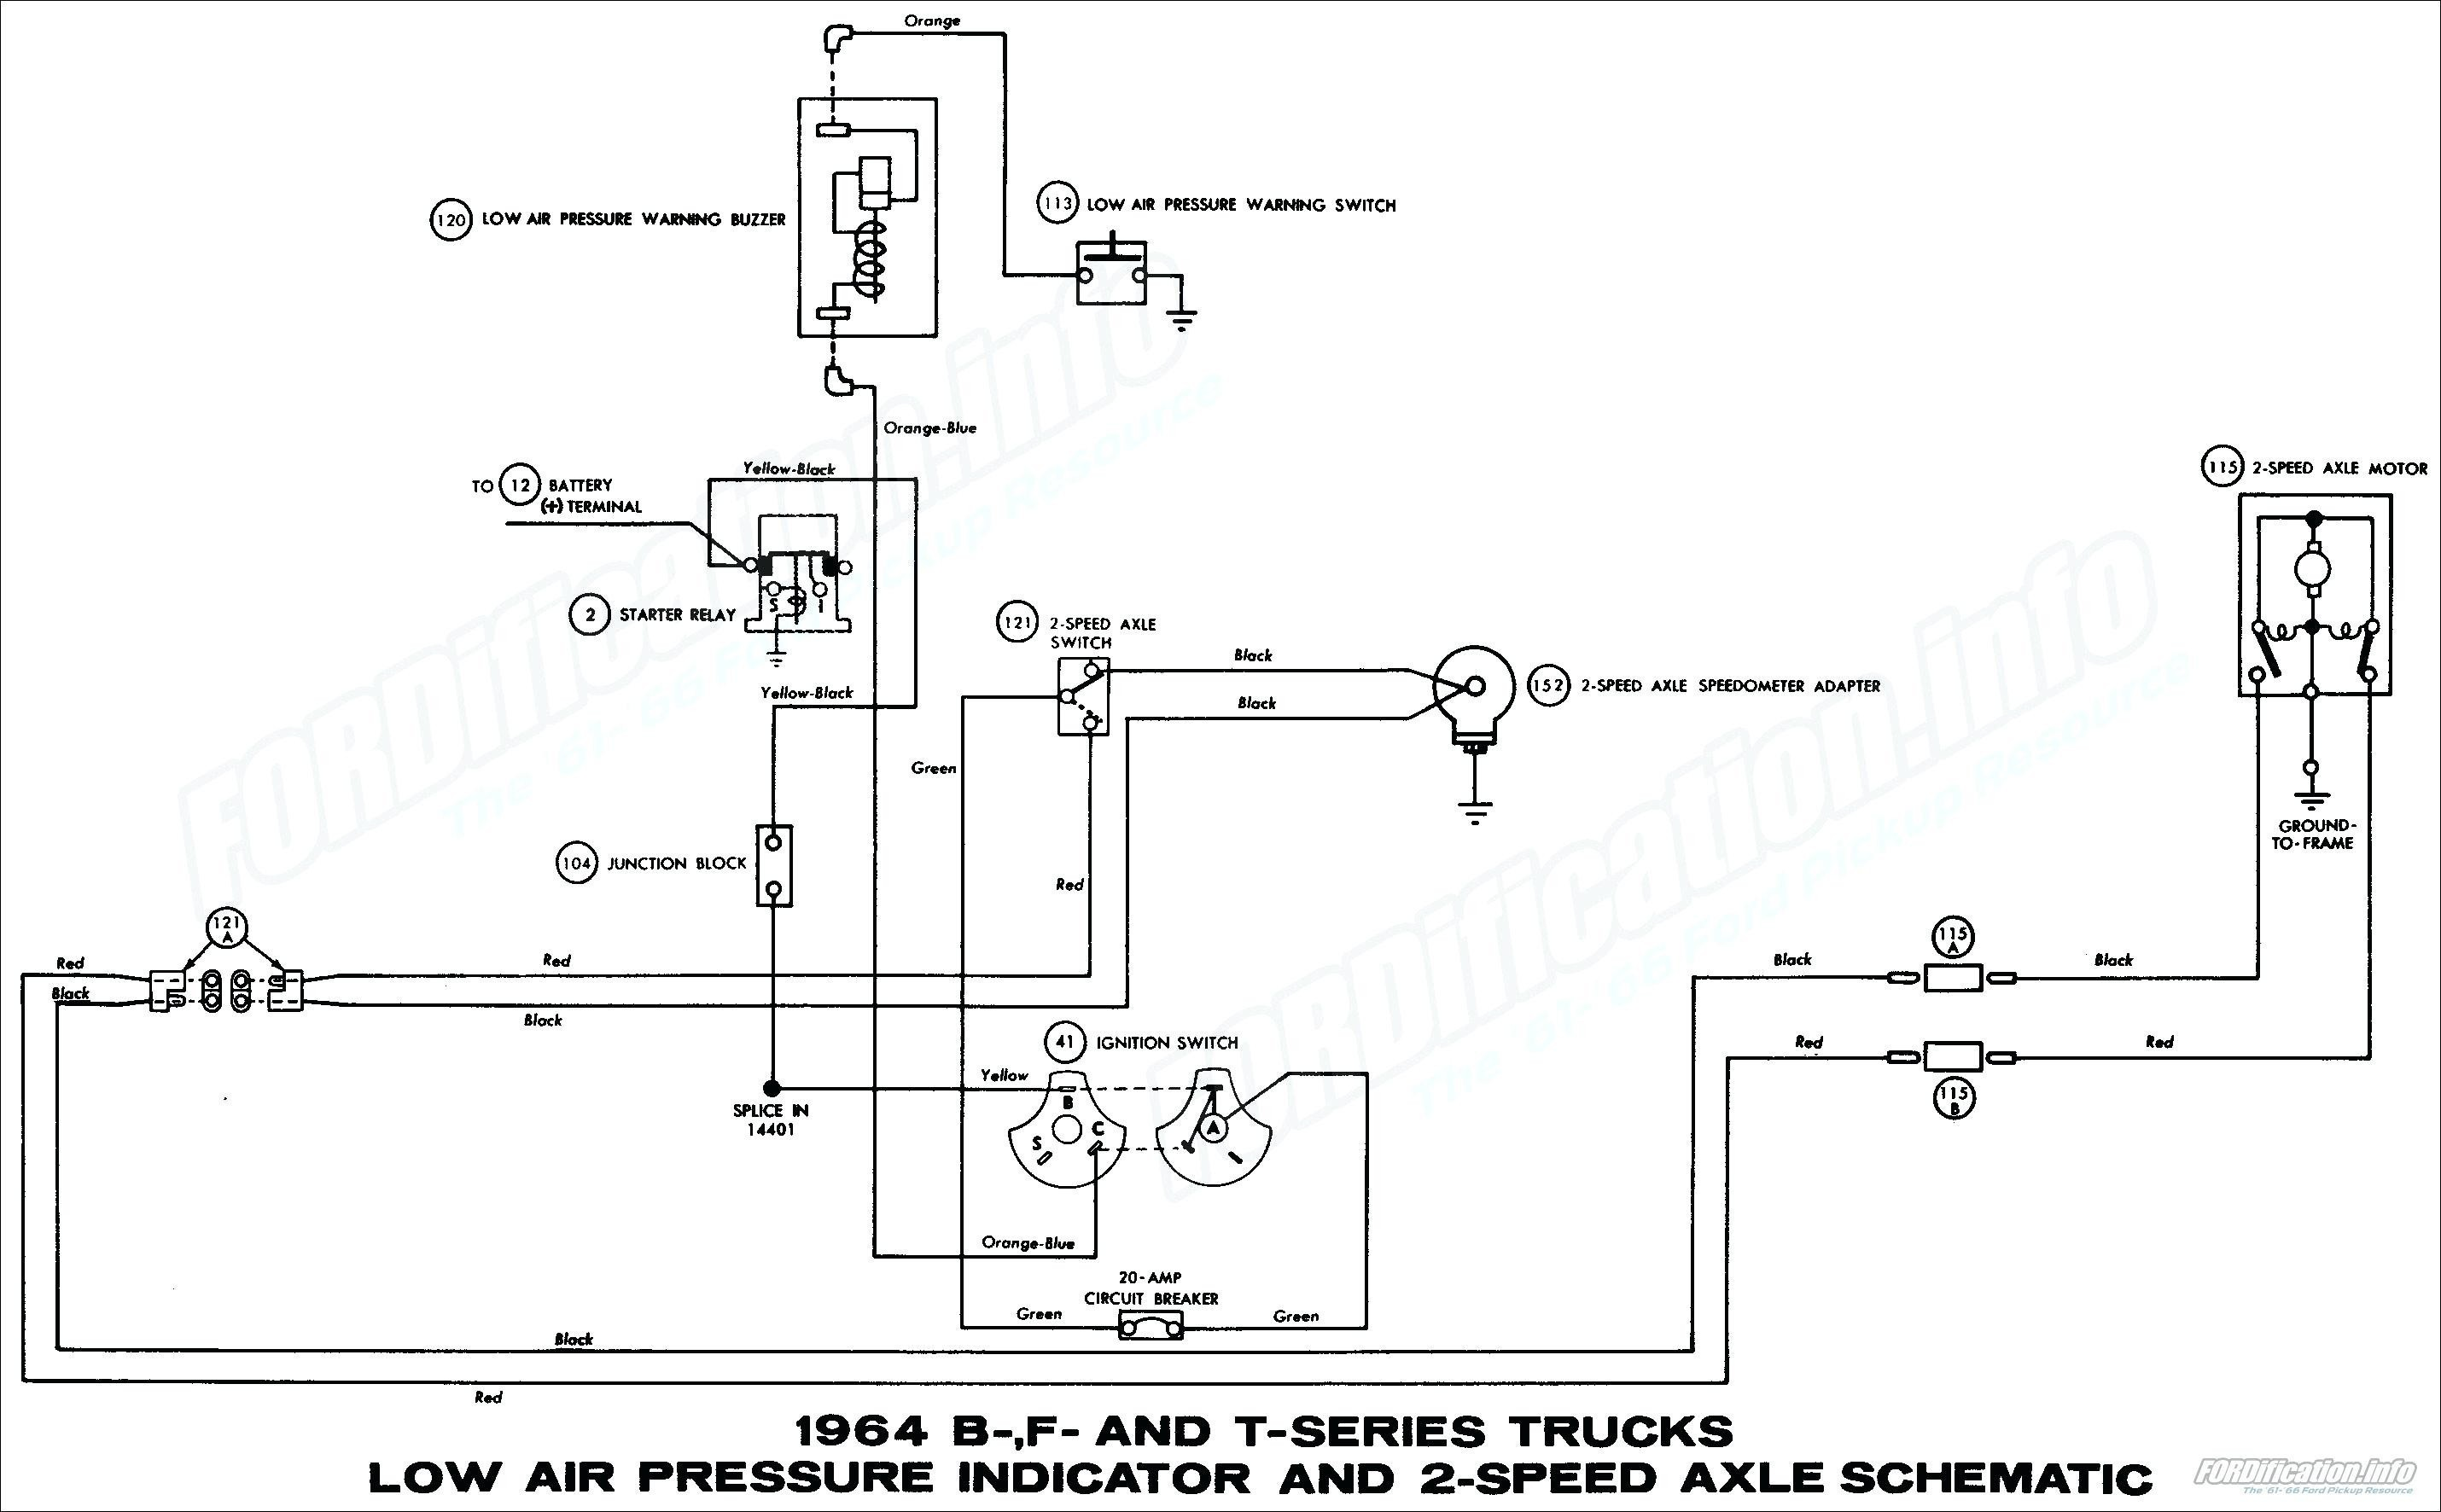 Ohv Engine Diagram Eaton Wiring Diagrams Layout Wiring Diagrams • Of Ohv Engine Diagram